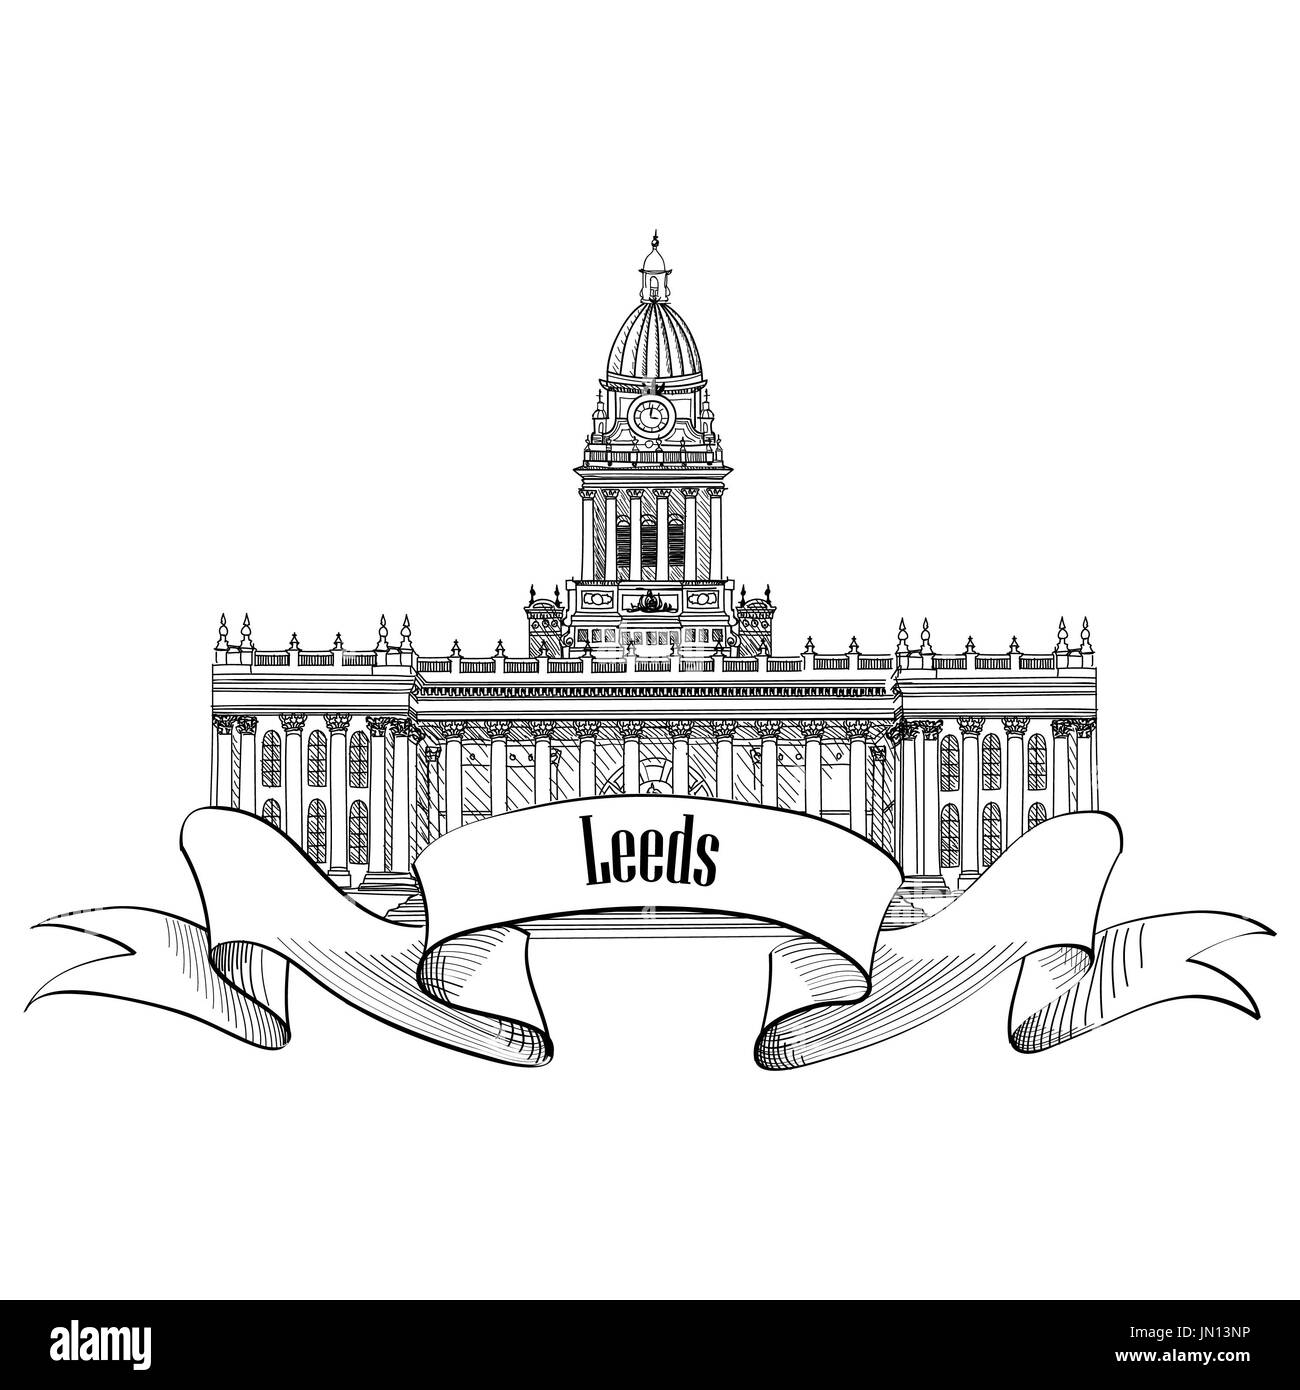 Travel England sign. Leeds Rathaus, UK, Great Britain. English city famous building. Vector label isolated. - Stock Image